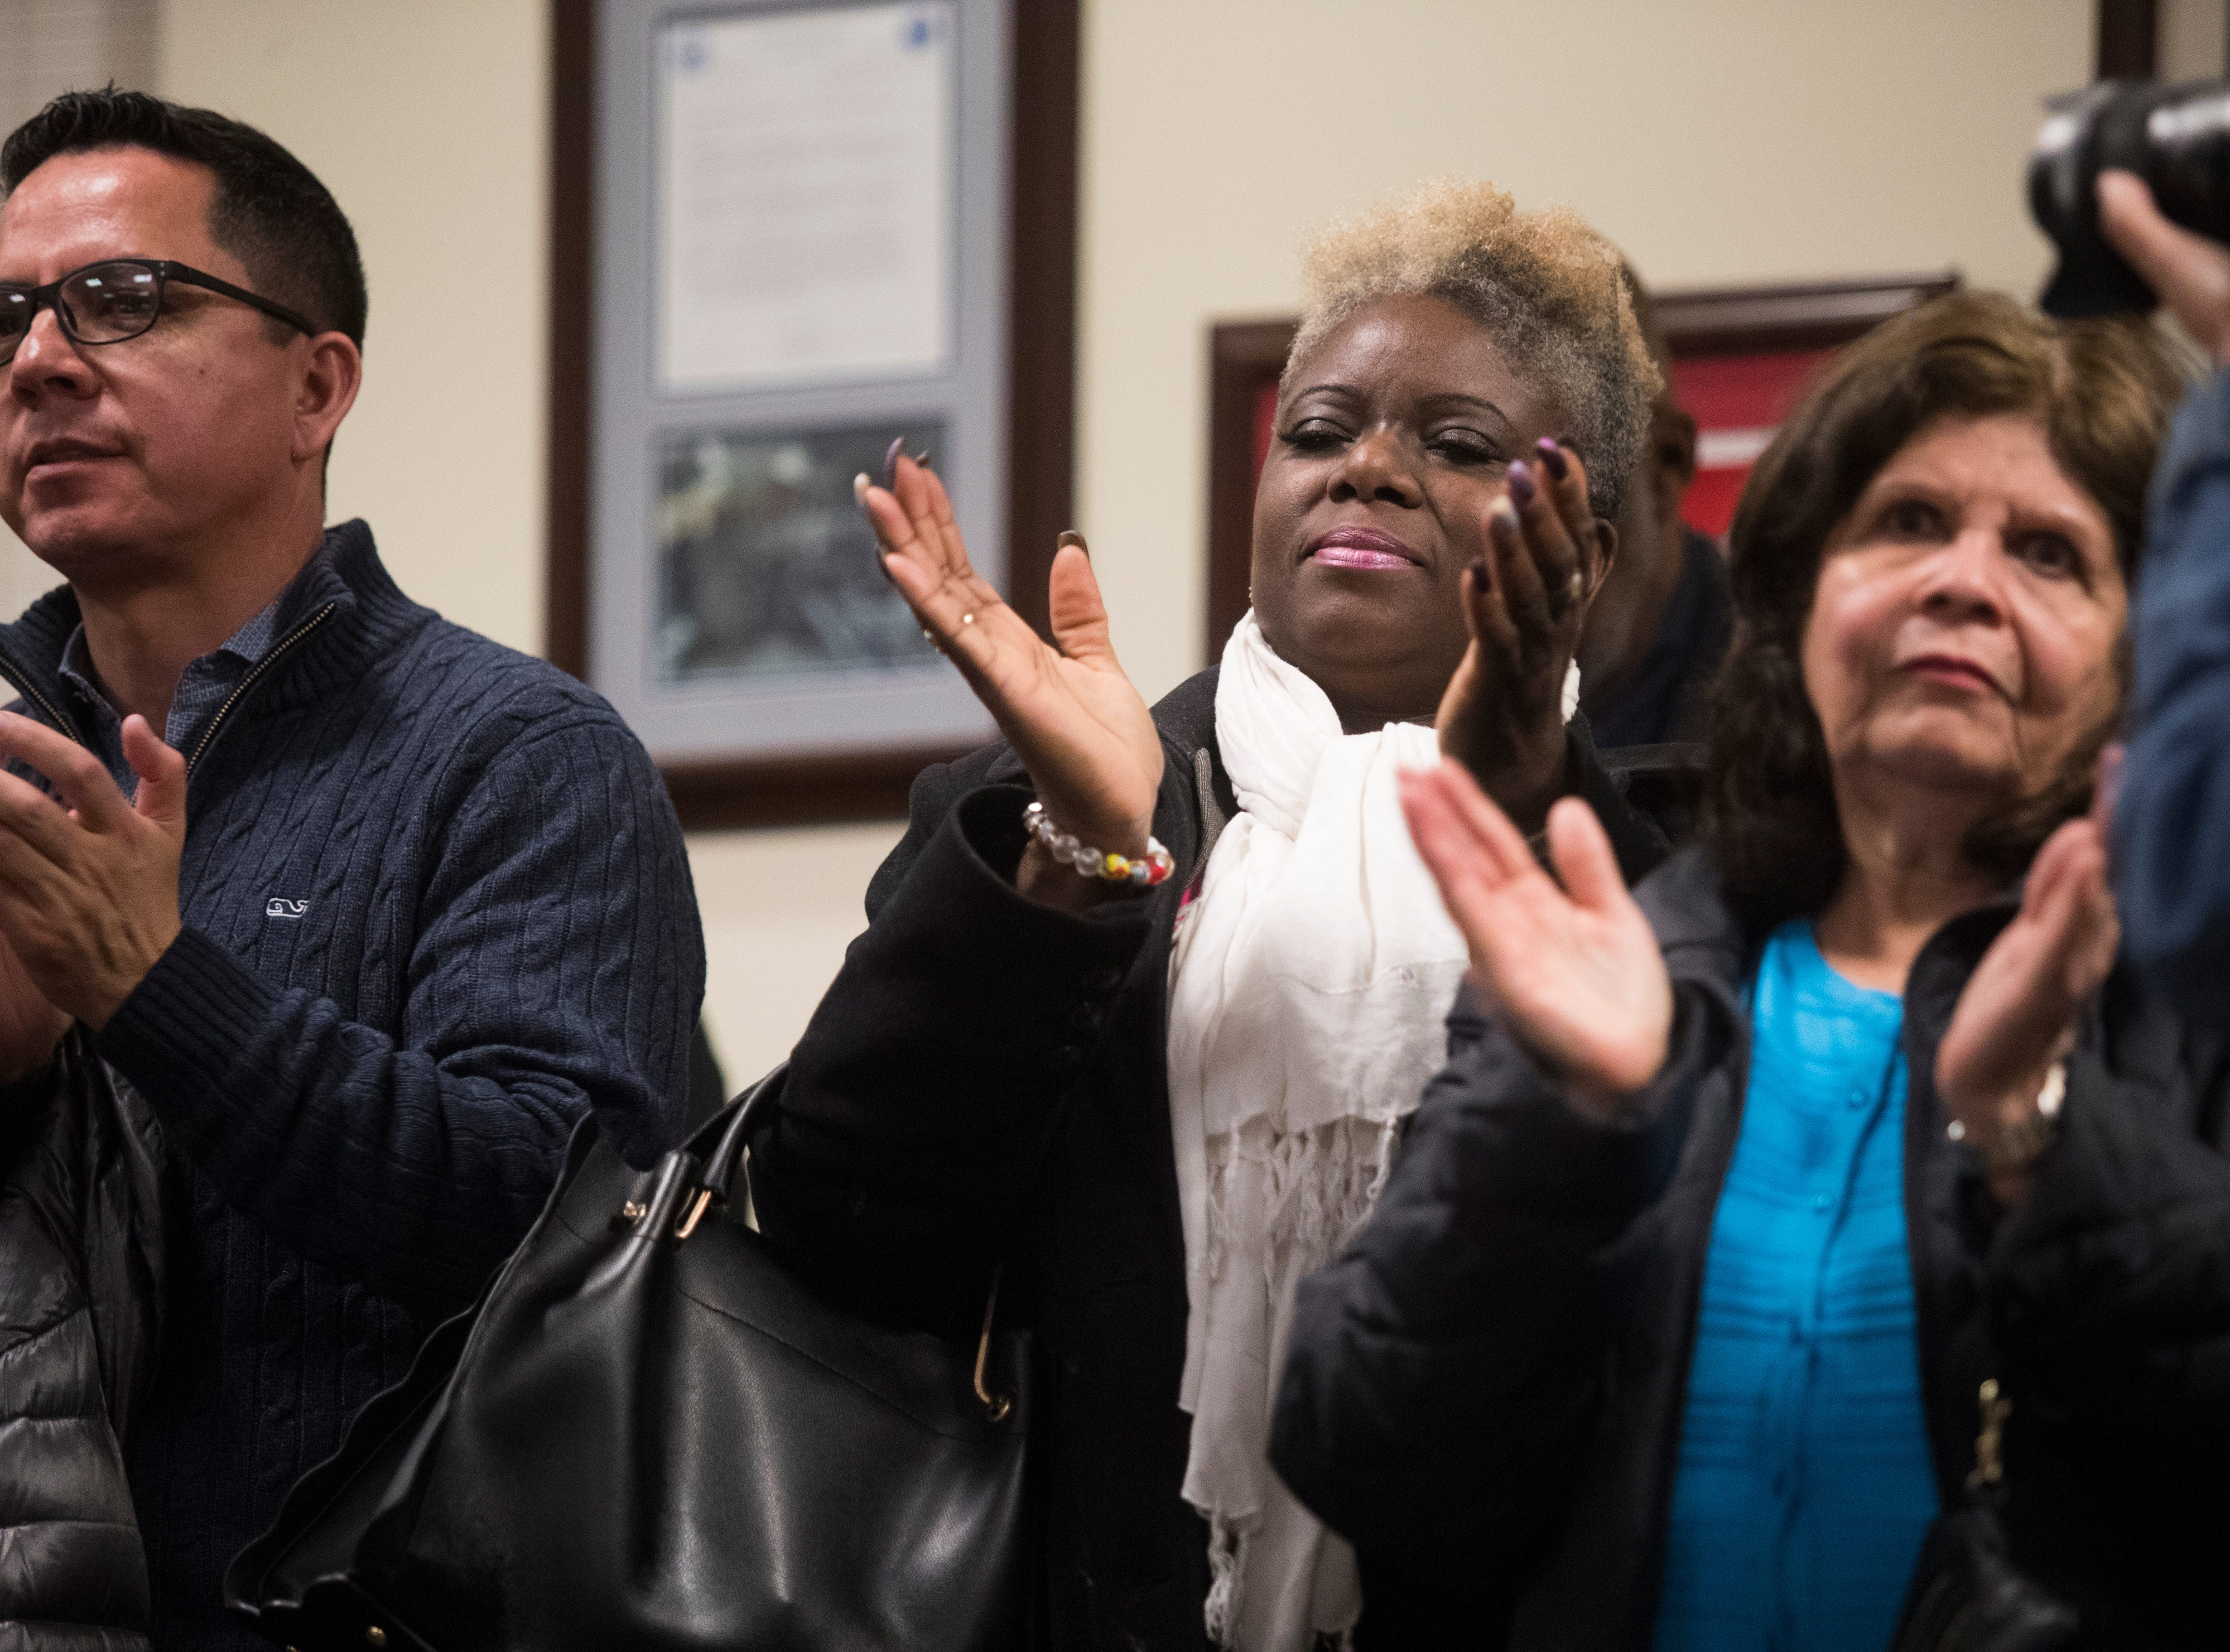 Members of the public clap as Kerri Evelyn Harris speaks to the Middletown City Council Monday night in Middletown.